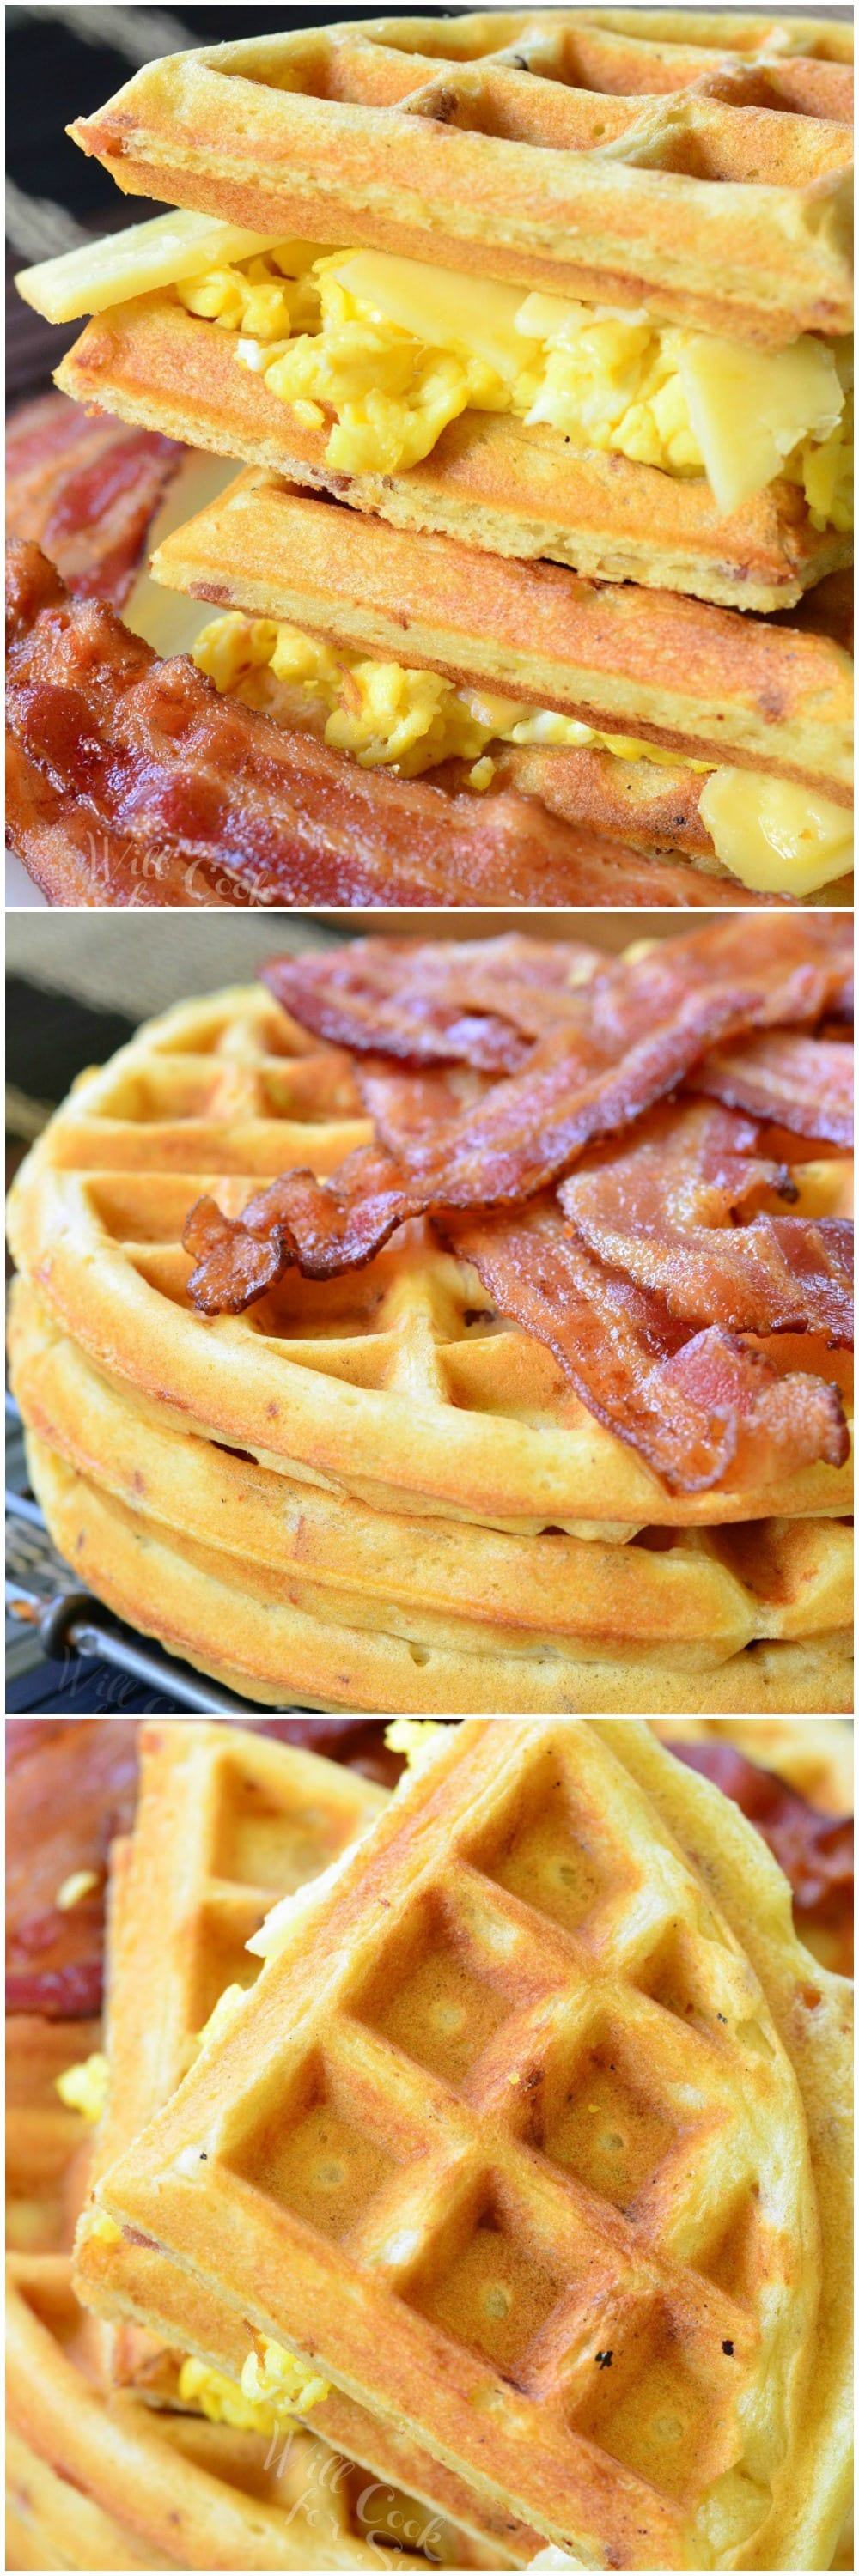 Waffle Breakfast Sandwich with Savory Bacon Waffles collage